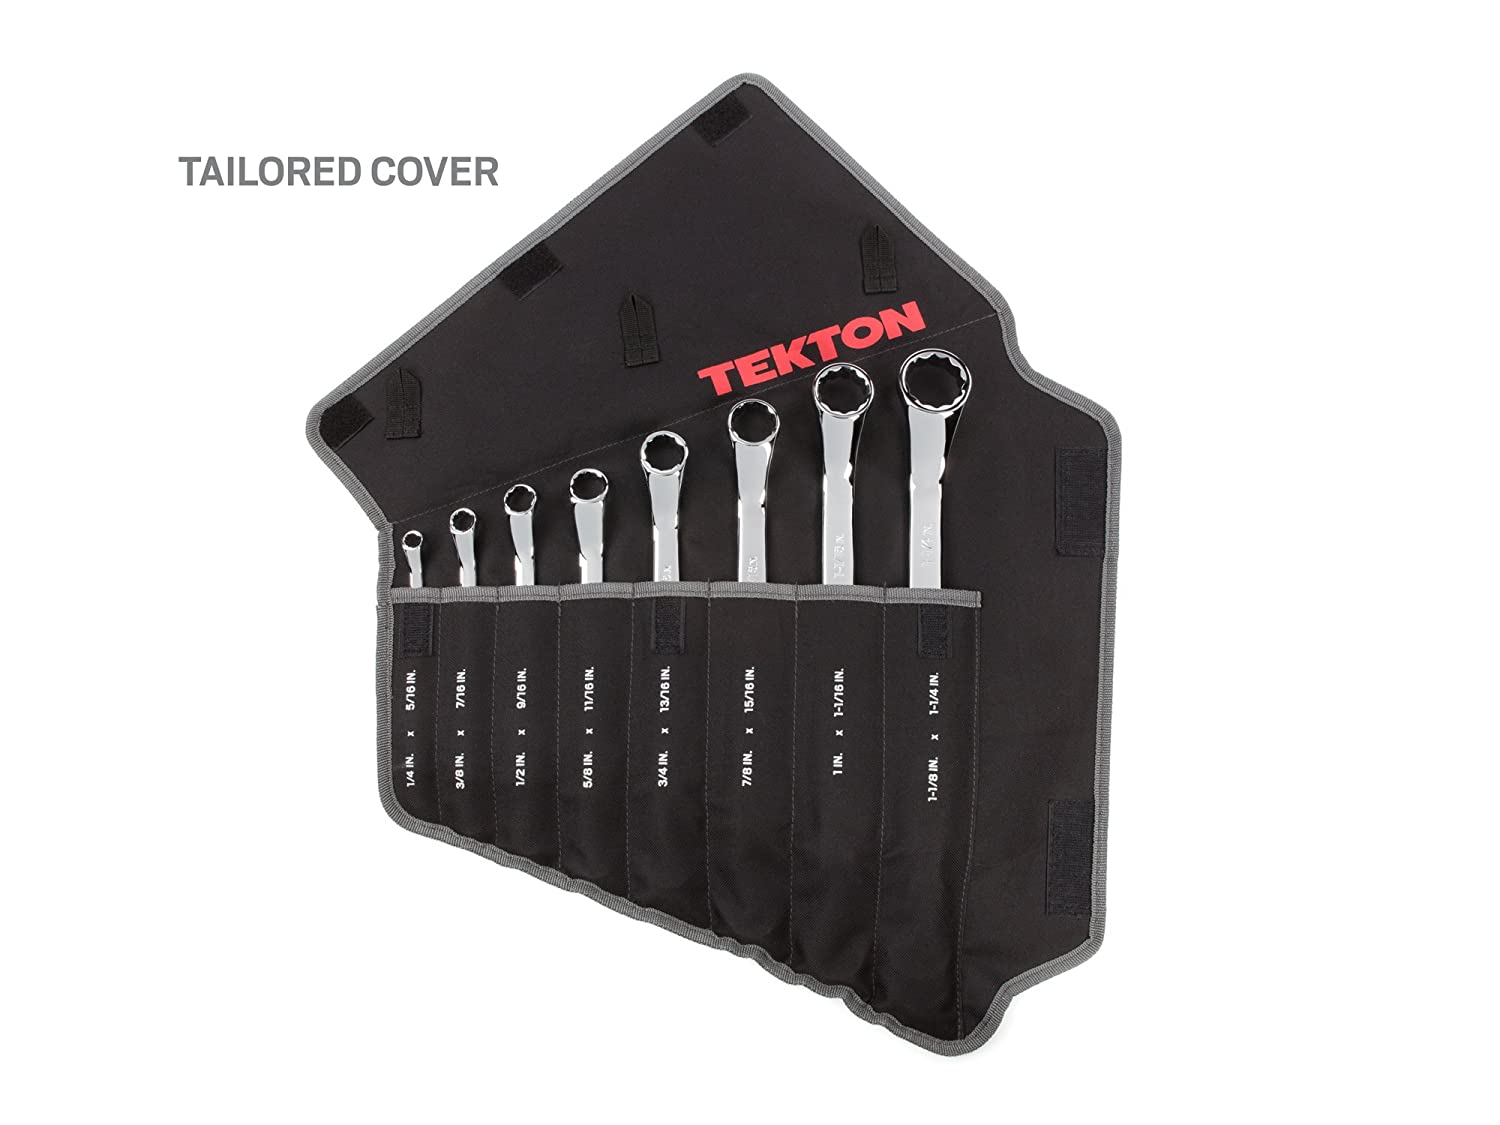 1//4-Inch TEKTON 45-Degree Offset Box End Wrench Set with Roll-up Storage Pouch 5-Piece 13//16-Inch WBE23505 Inch